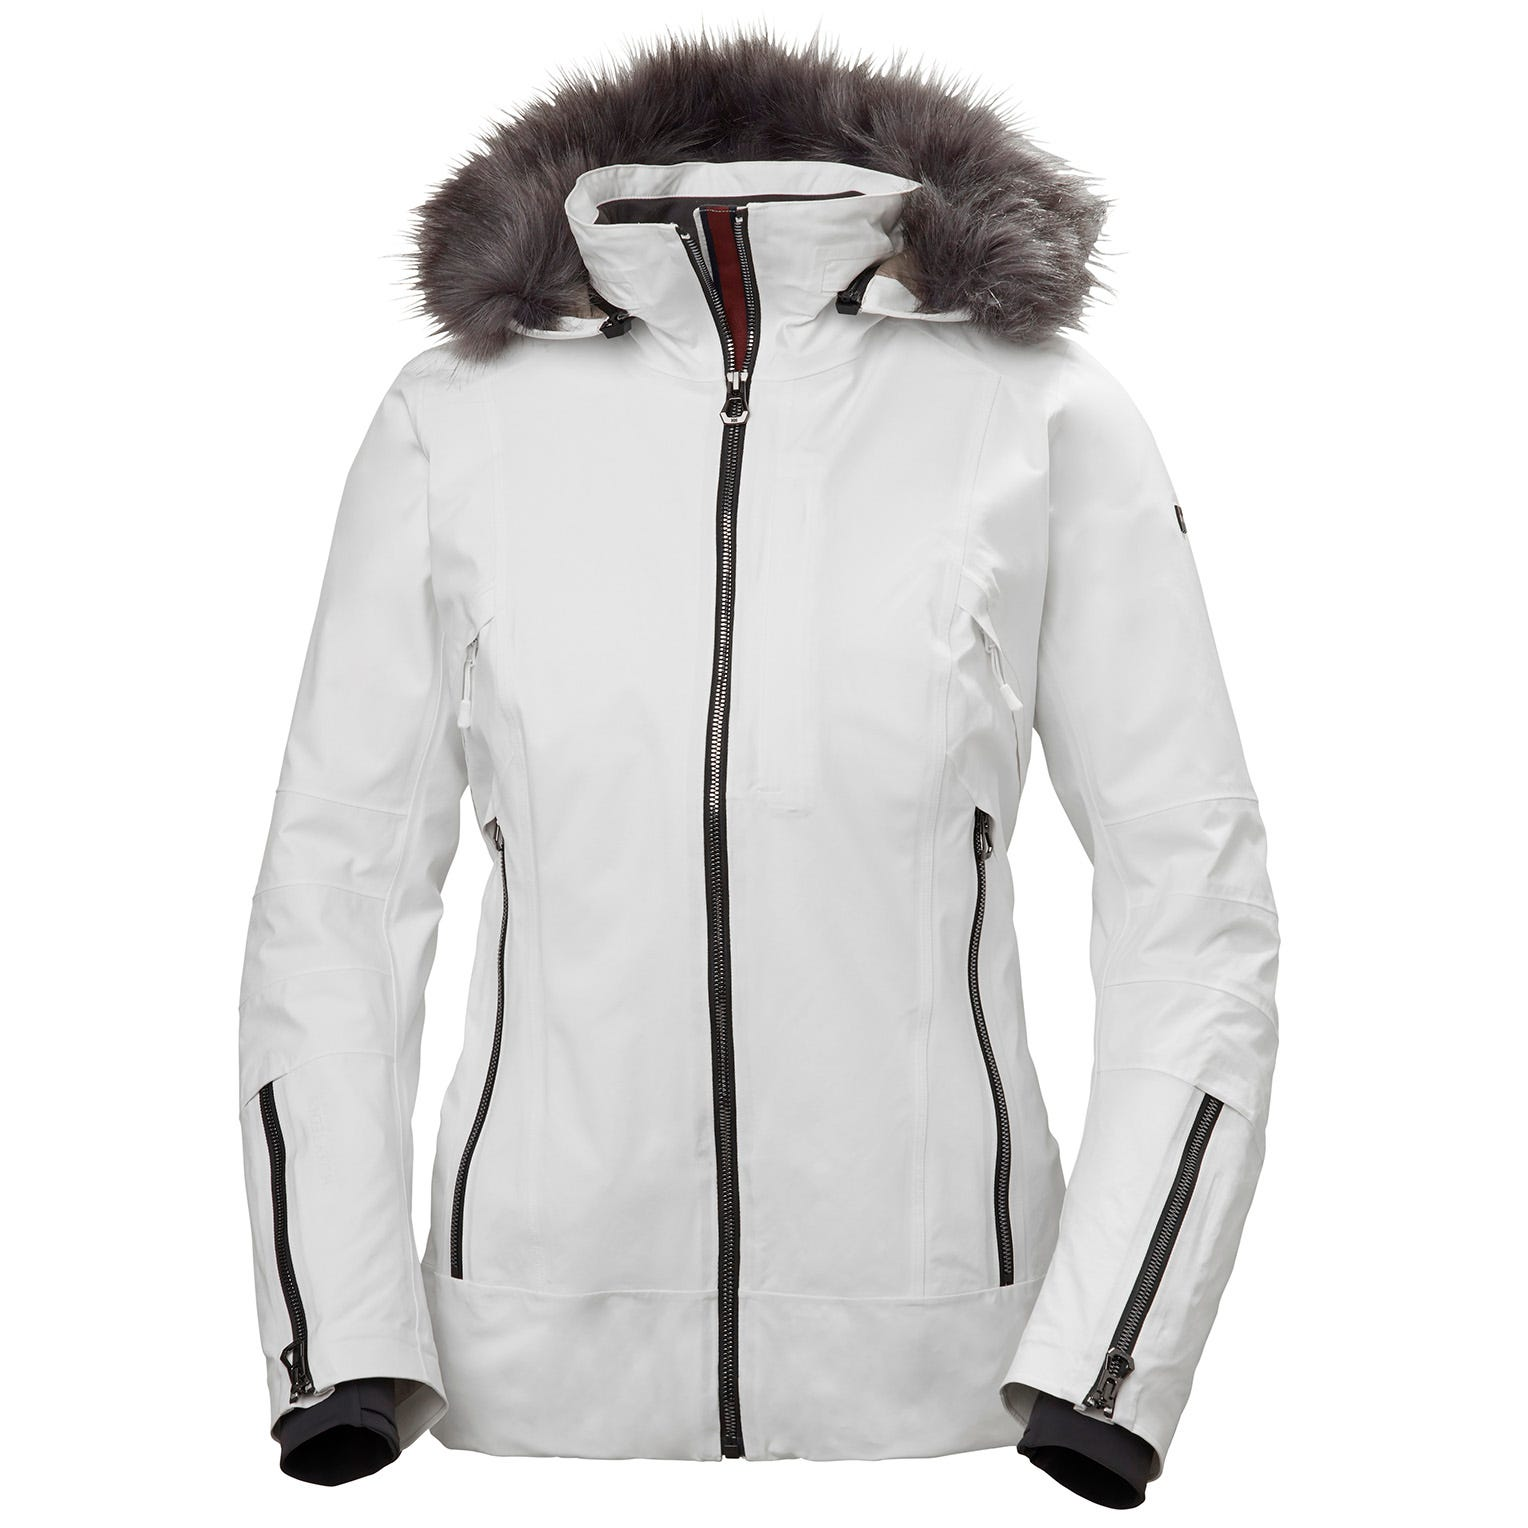 Womens Snowdancer Ski Jacket With Faux Fur Hood | Helly Hansen Womens White XL